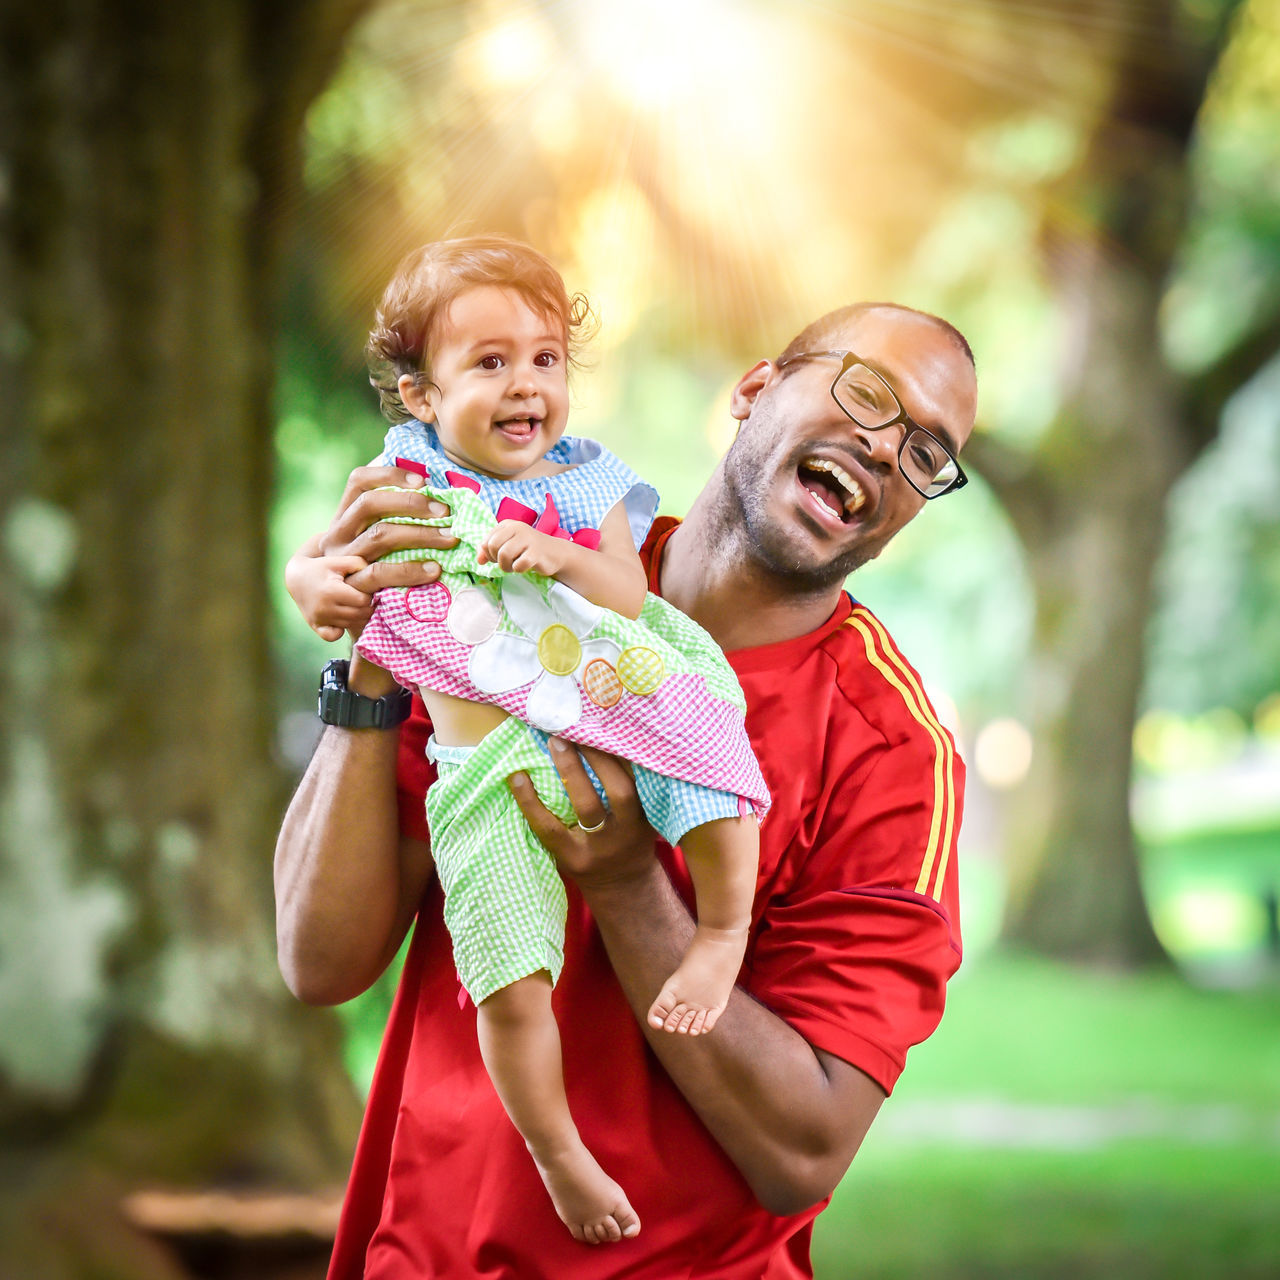 Adoption Baby Cheerful Daughter Enjoyment Family Family Family With One Child Father Females Fun Green Happiness Joy Lifestyles Love Males  Nature Parent Single Single Parent Smiling Son Togetherness Trees